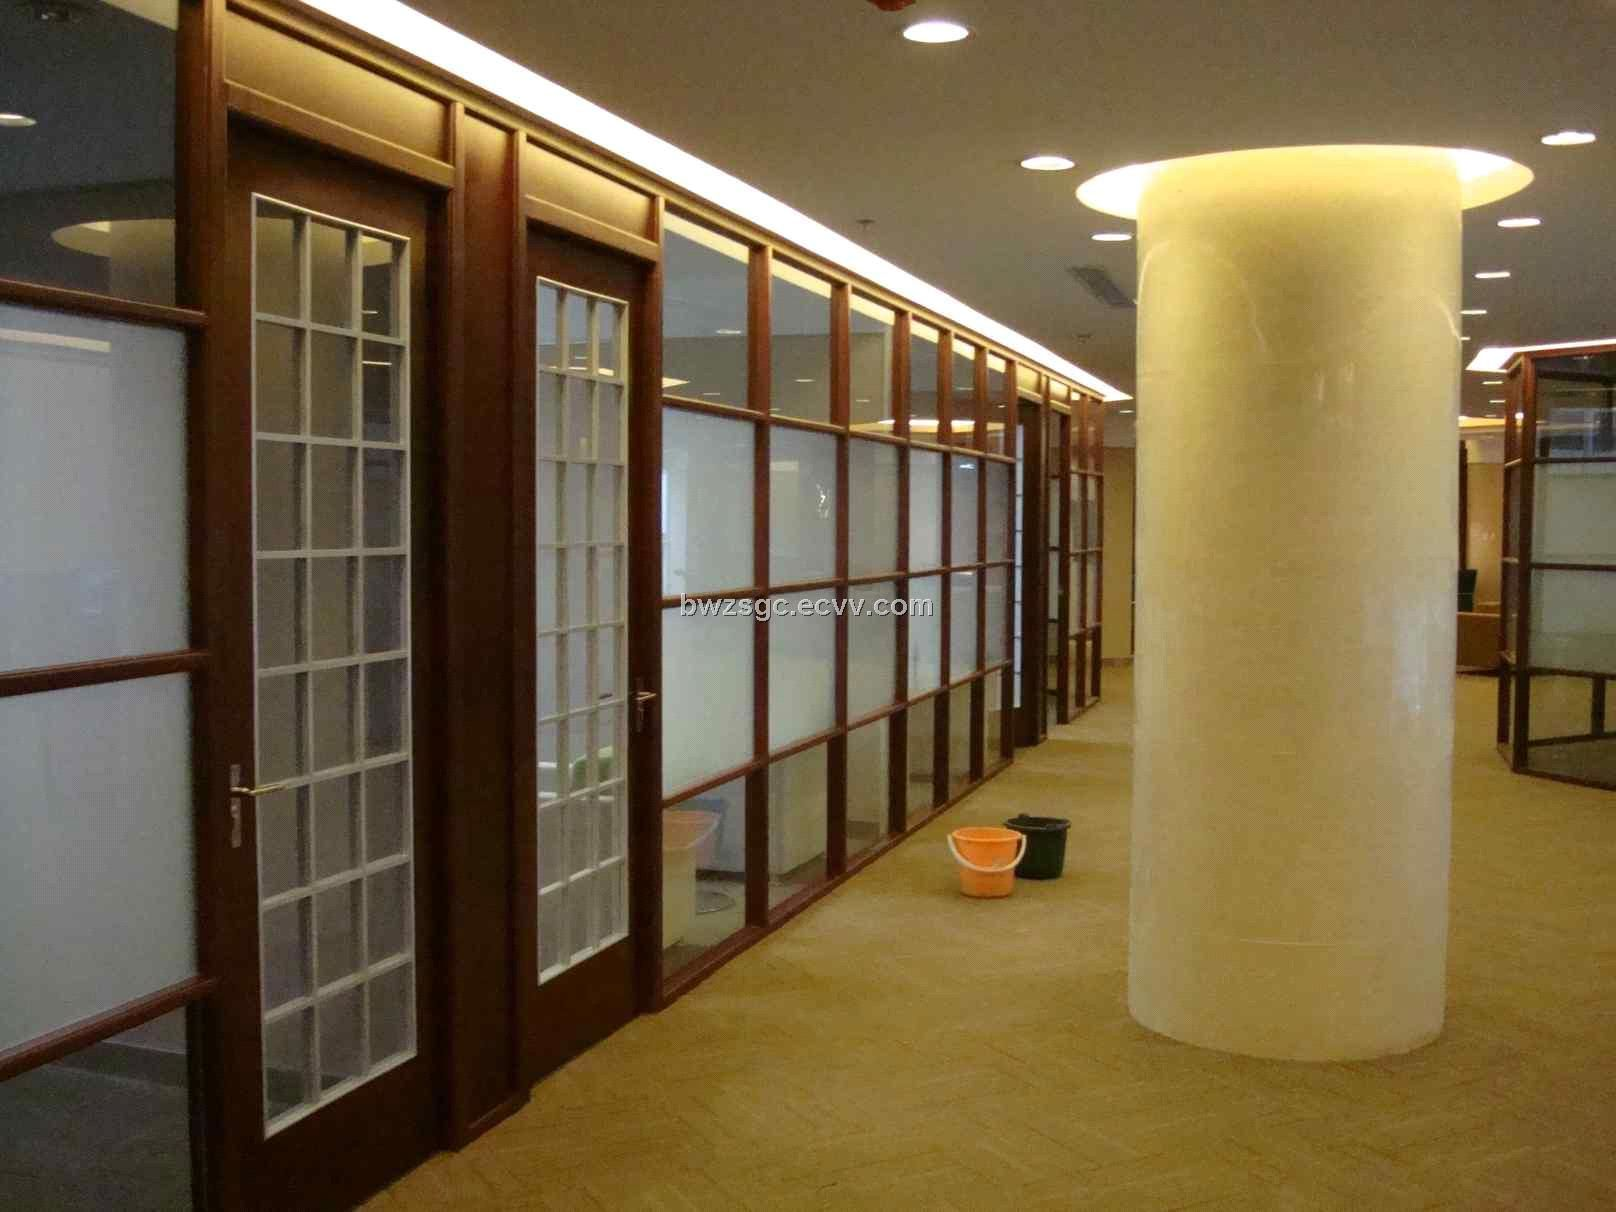 Office Design With Wood Trim Glass Wall Medium 80 X 80 Pixel Large 920 X 689 Pixel